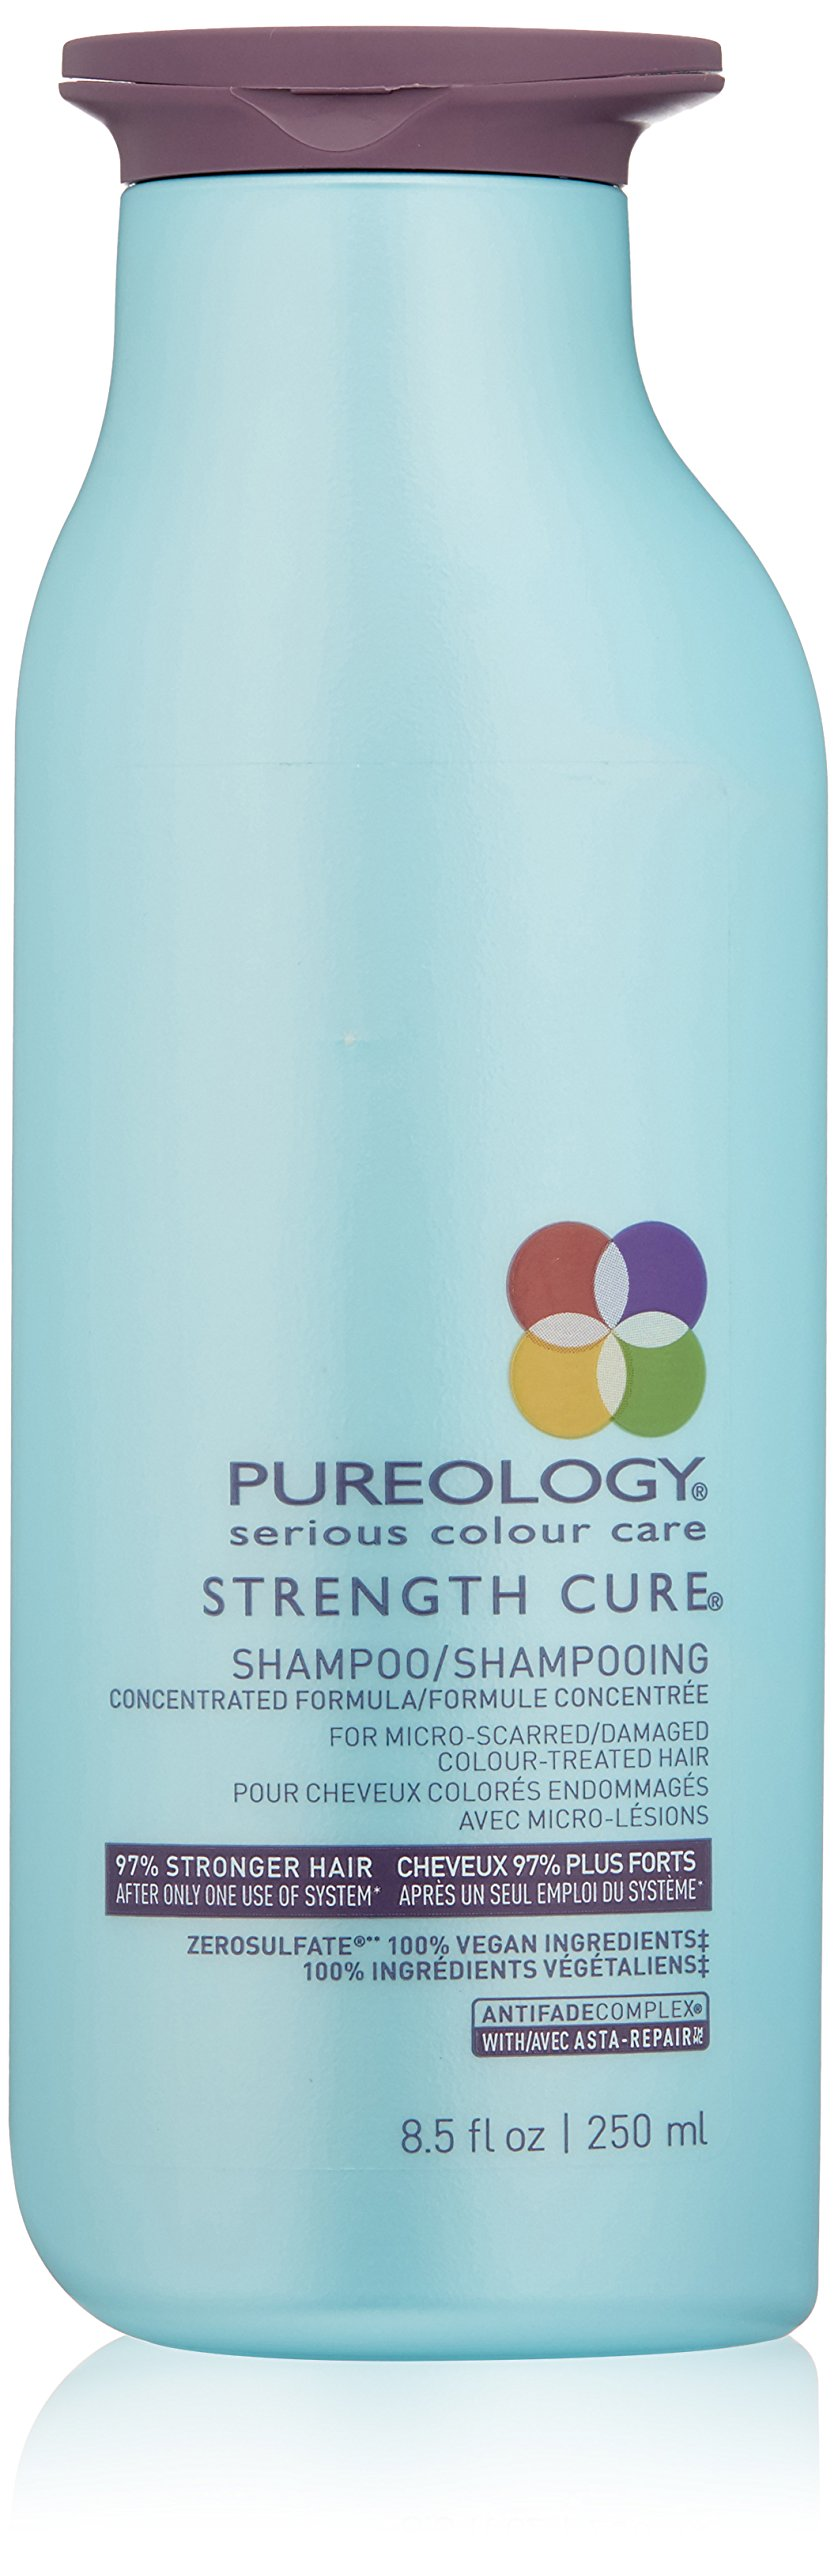 Pureology Strength Cure Sulfate Free Shampoo by Pureology (Image #1)